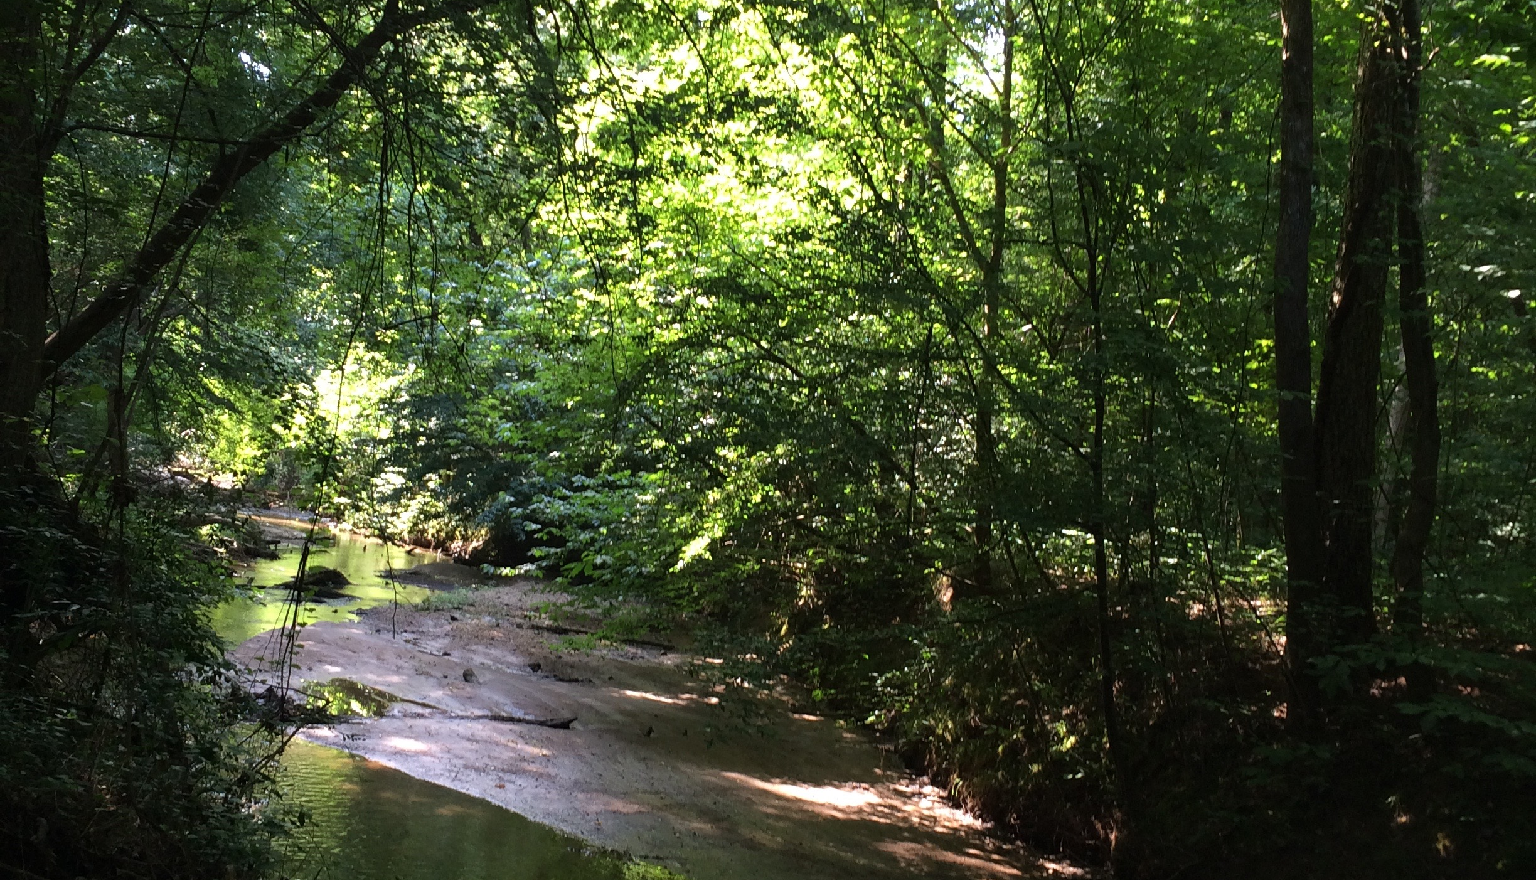 This 148 acre property protects pasture, as well as natural pine, oak-hickory-pine and bottomland hardwood forests with canebrakes along Sugar Creek.